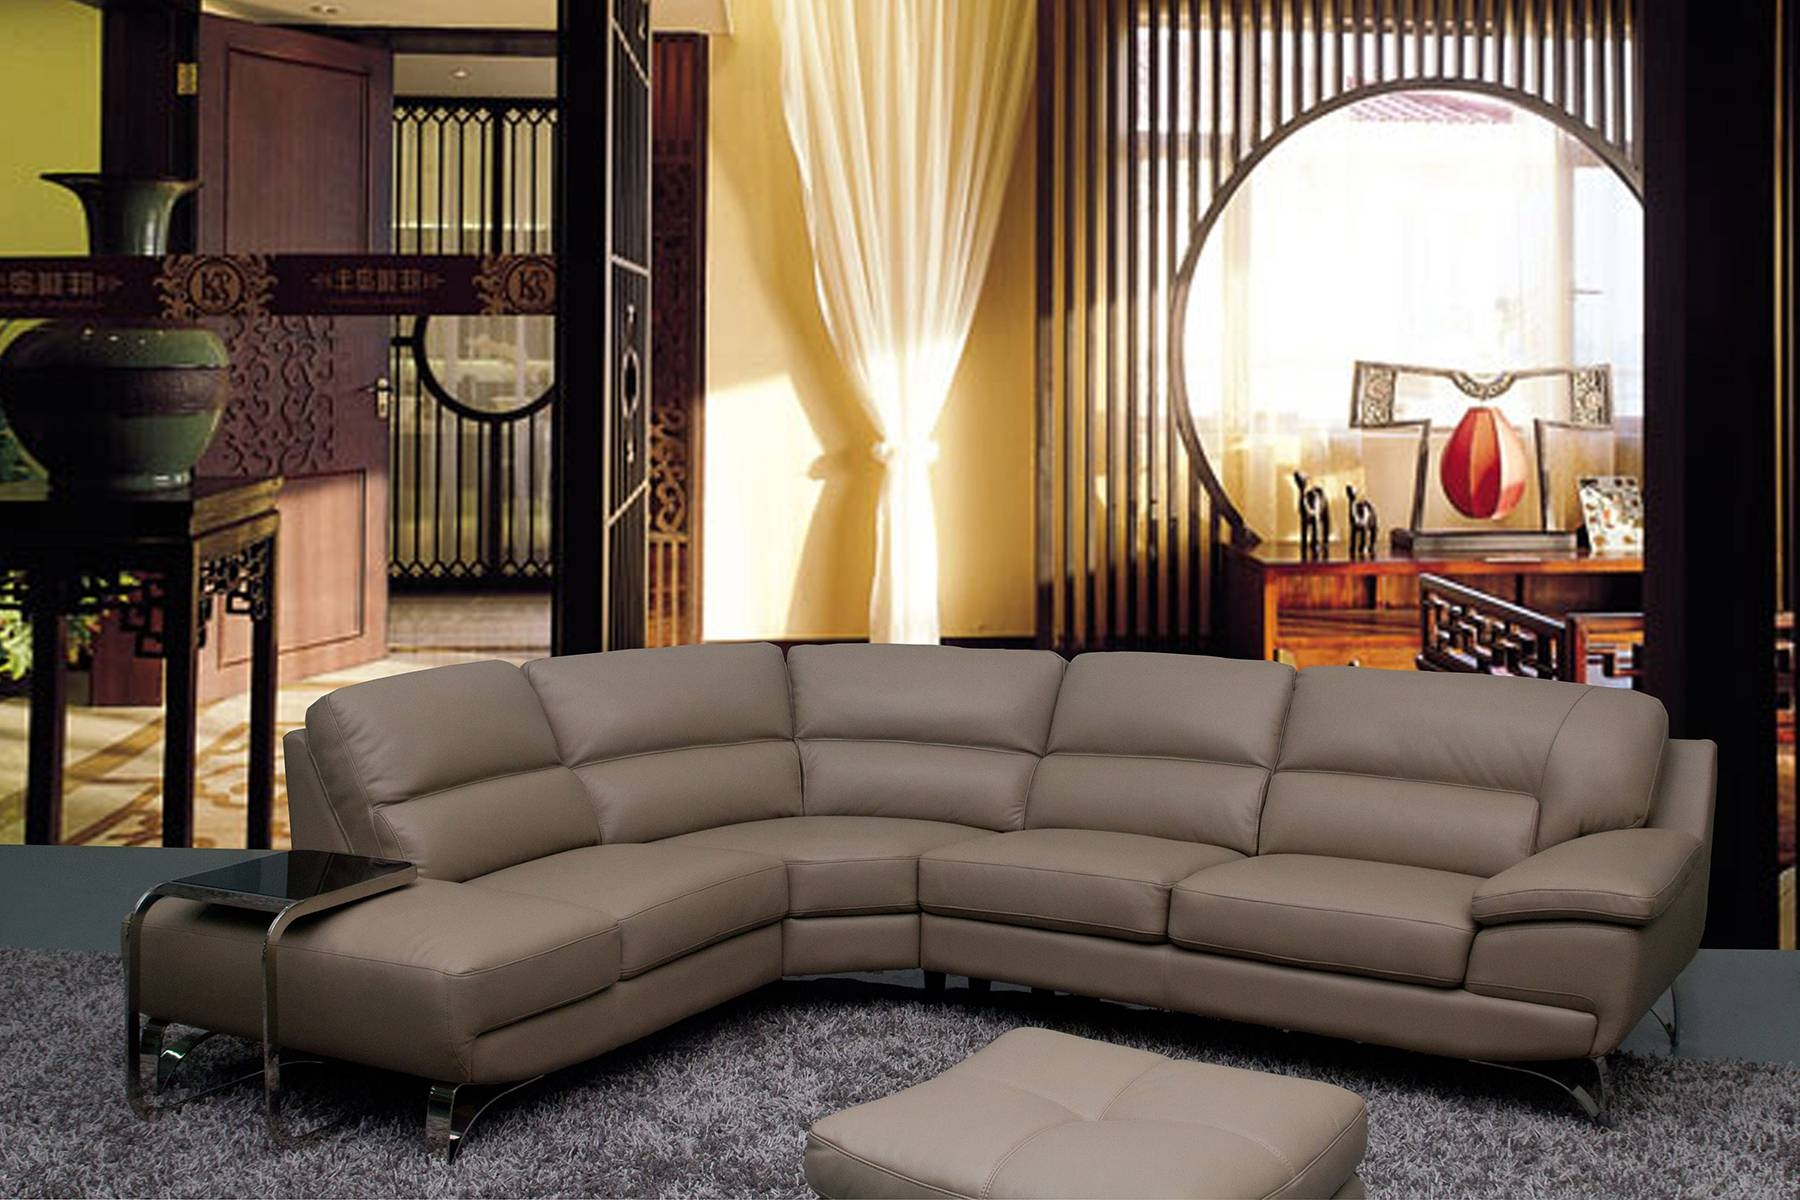 Traditional Leather Sectional Sofa And Sectional Sofas 10 for Traditional Leather Sectional Sofas (Image 14 of 15)